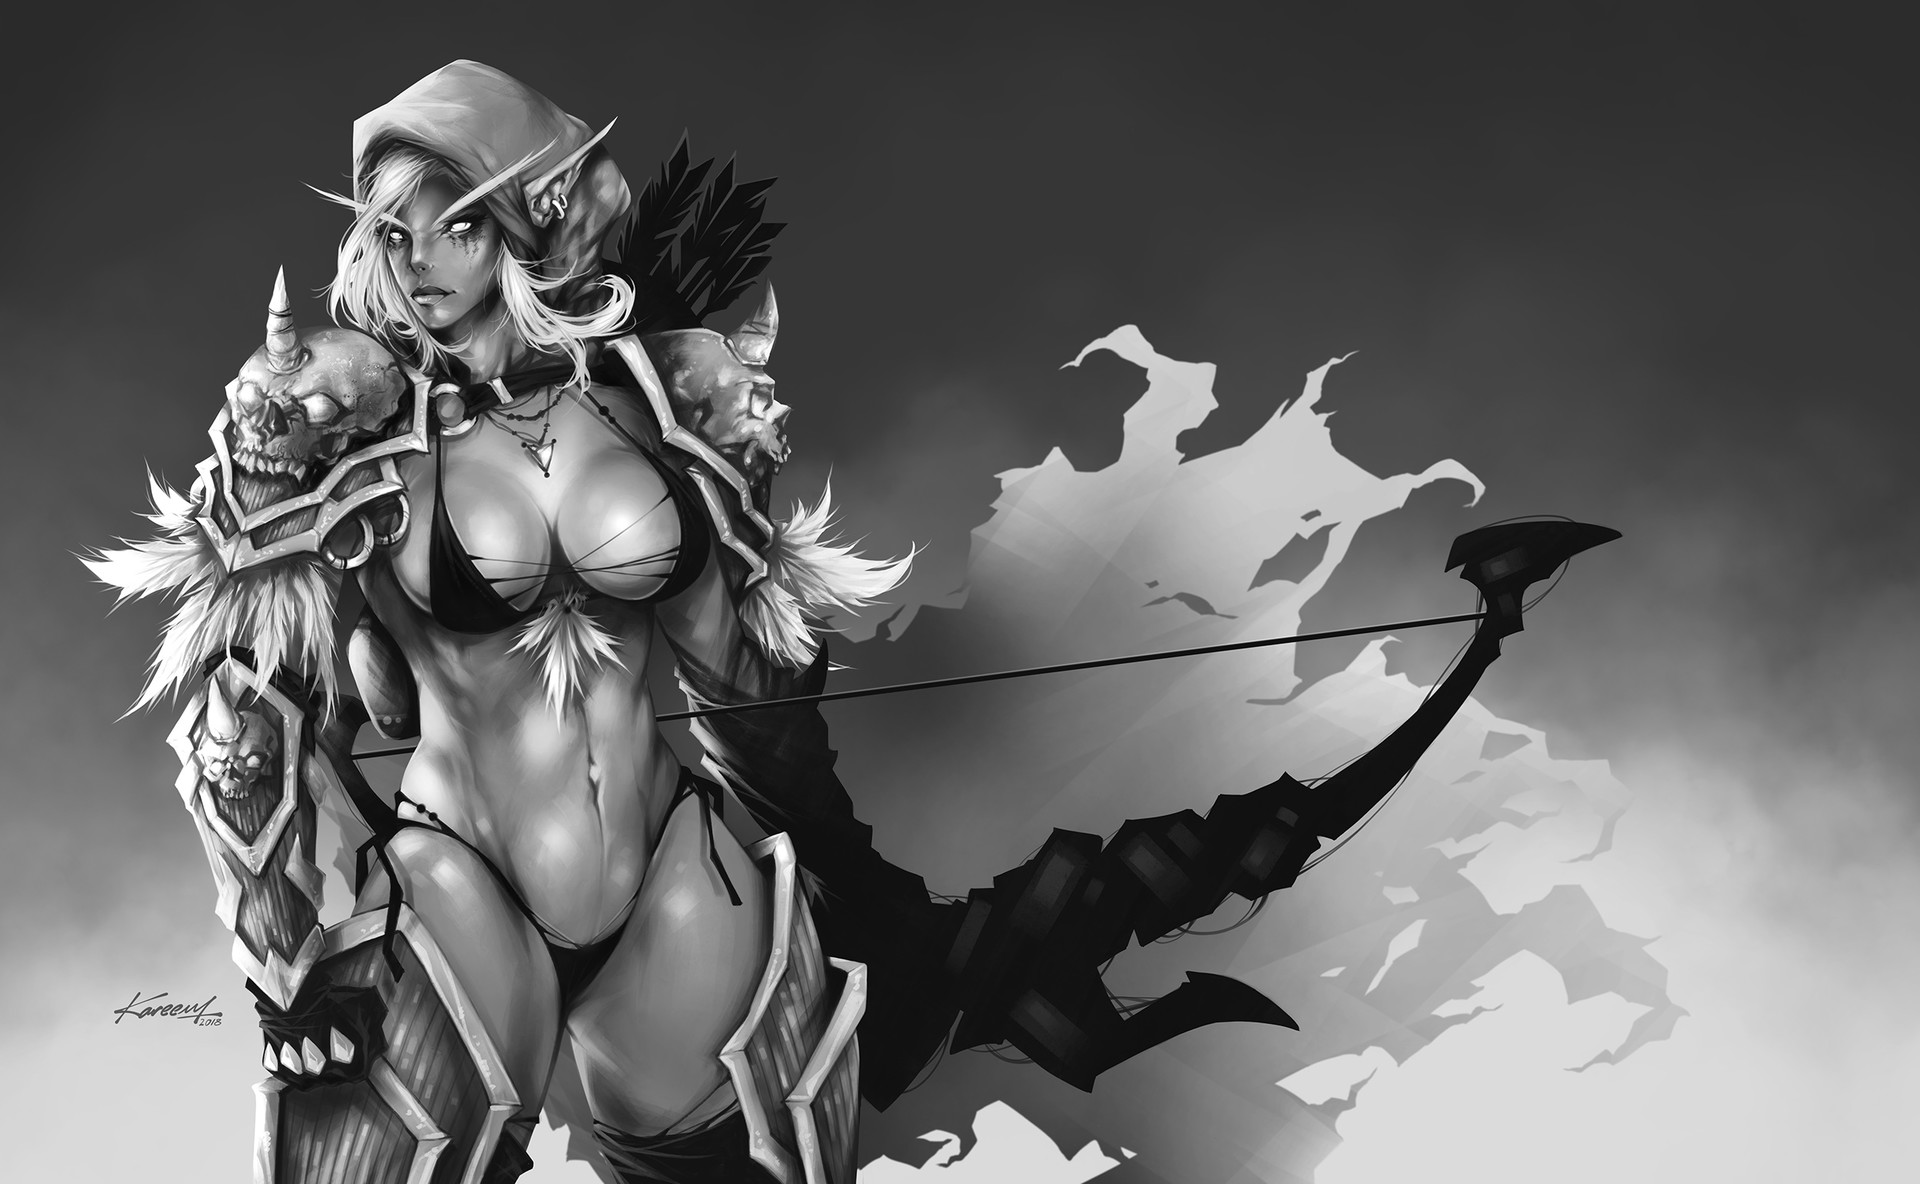 Greyscale and values